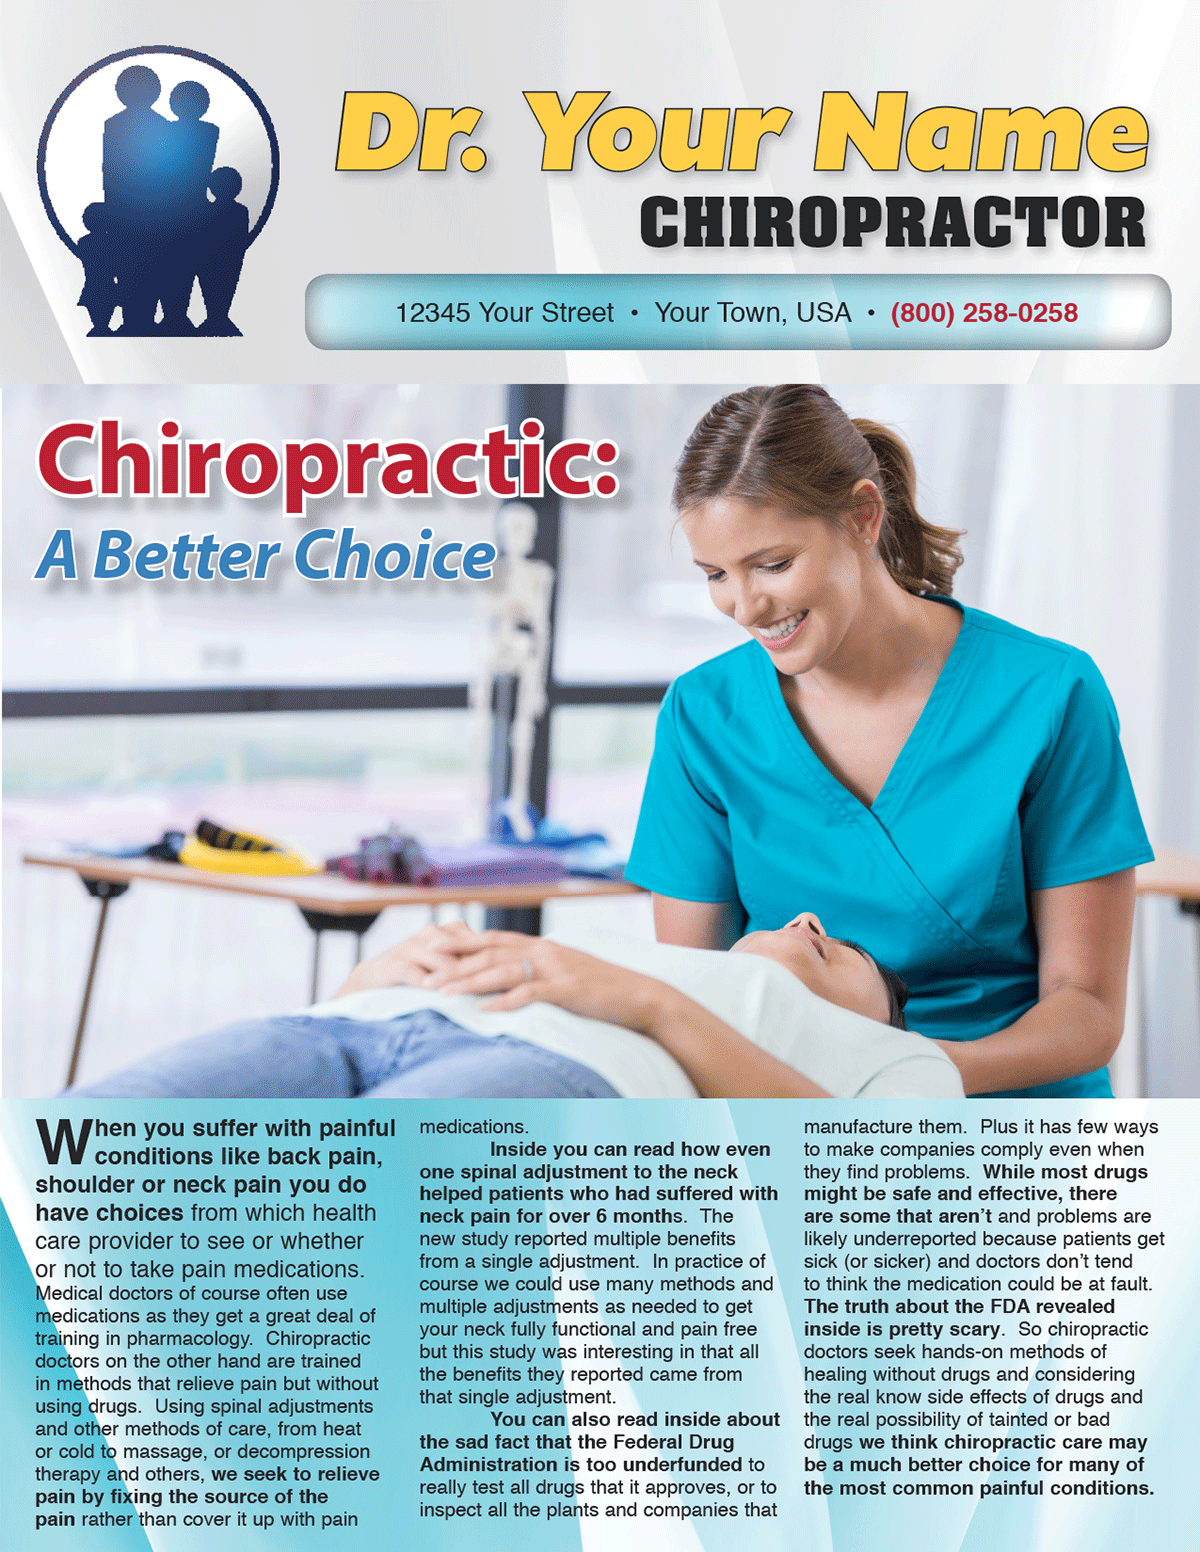 Chiropractic: A Better Choice